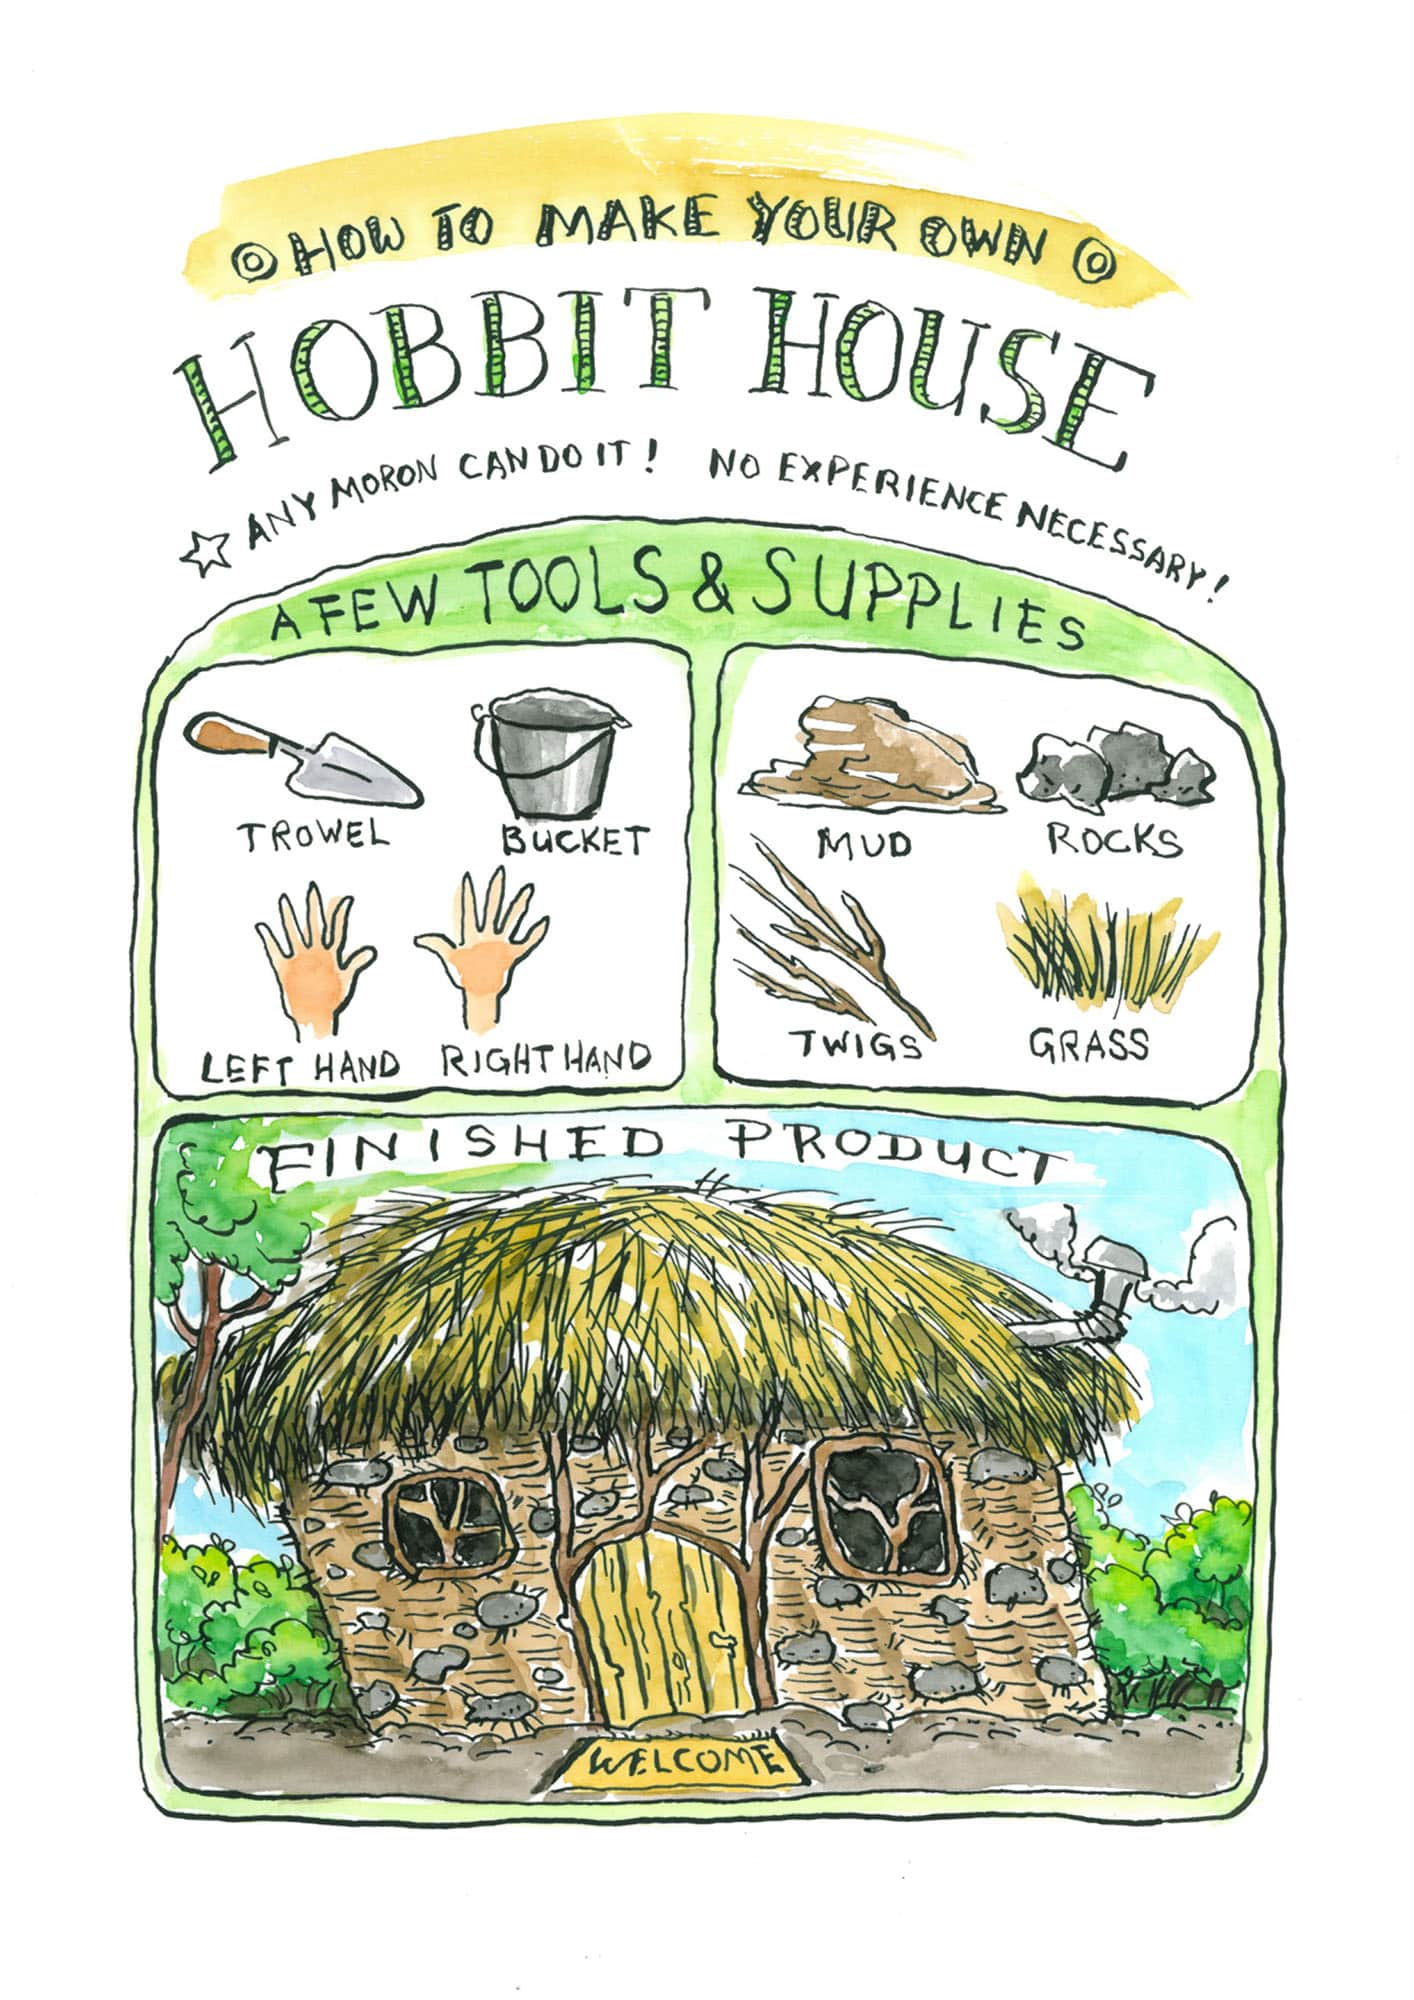 """How to make your own hobbit house"" 